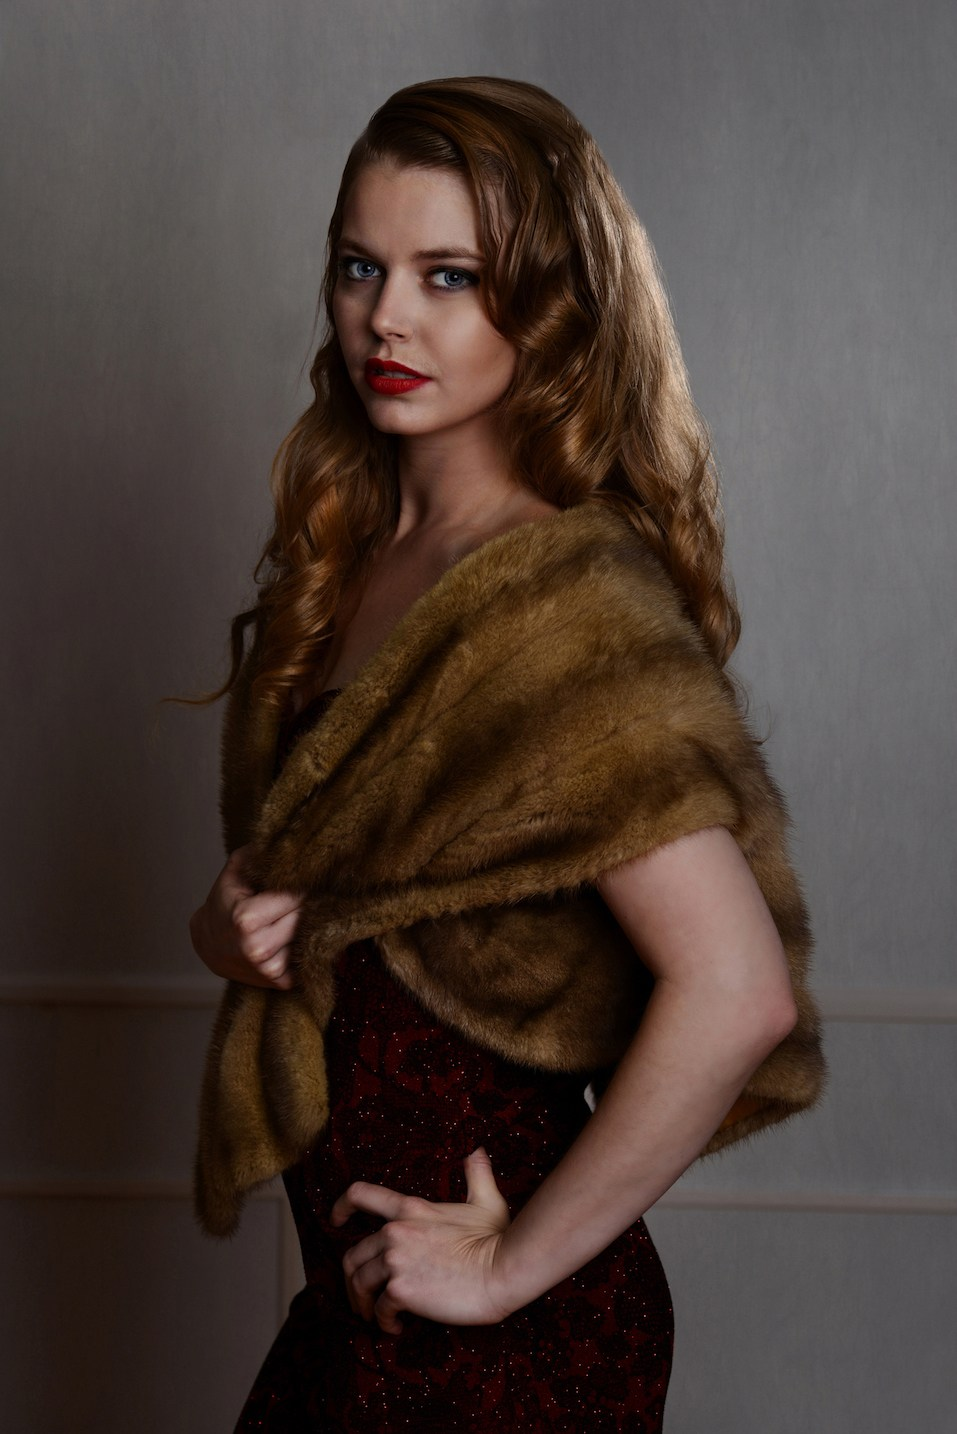 1940s glamour portrait wearing fur wrap with hand on hip